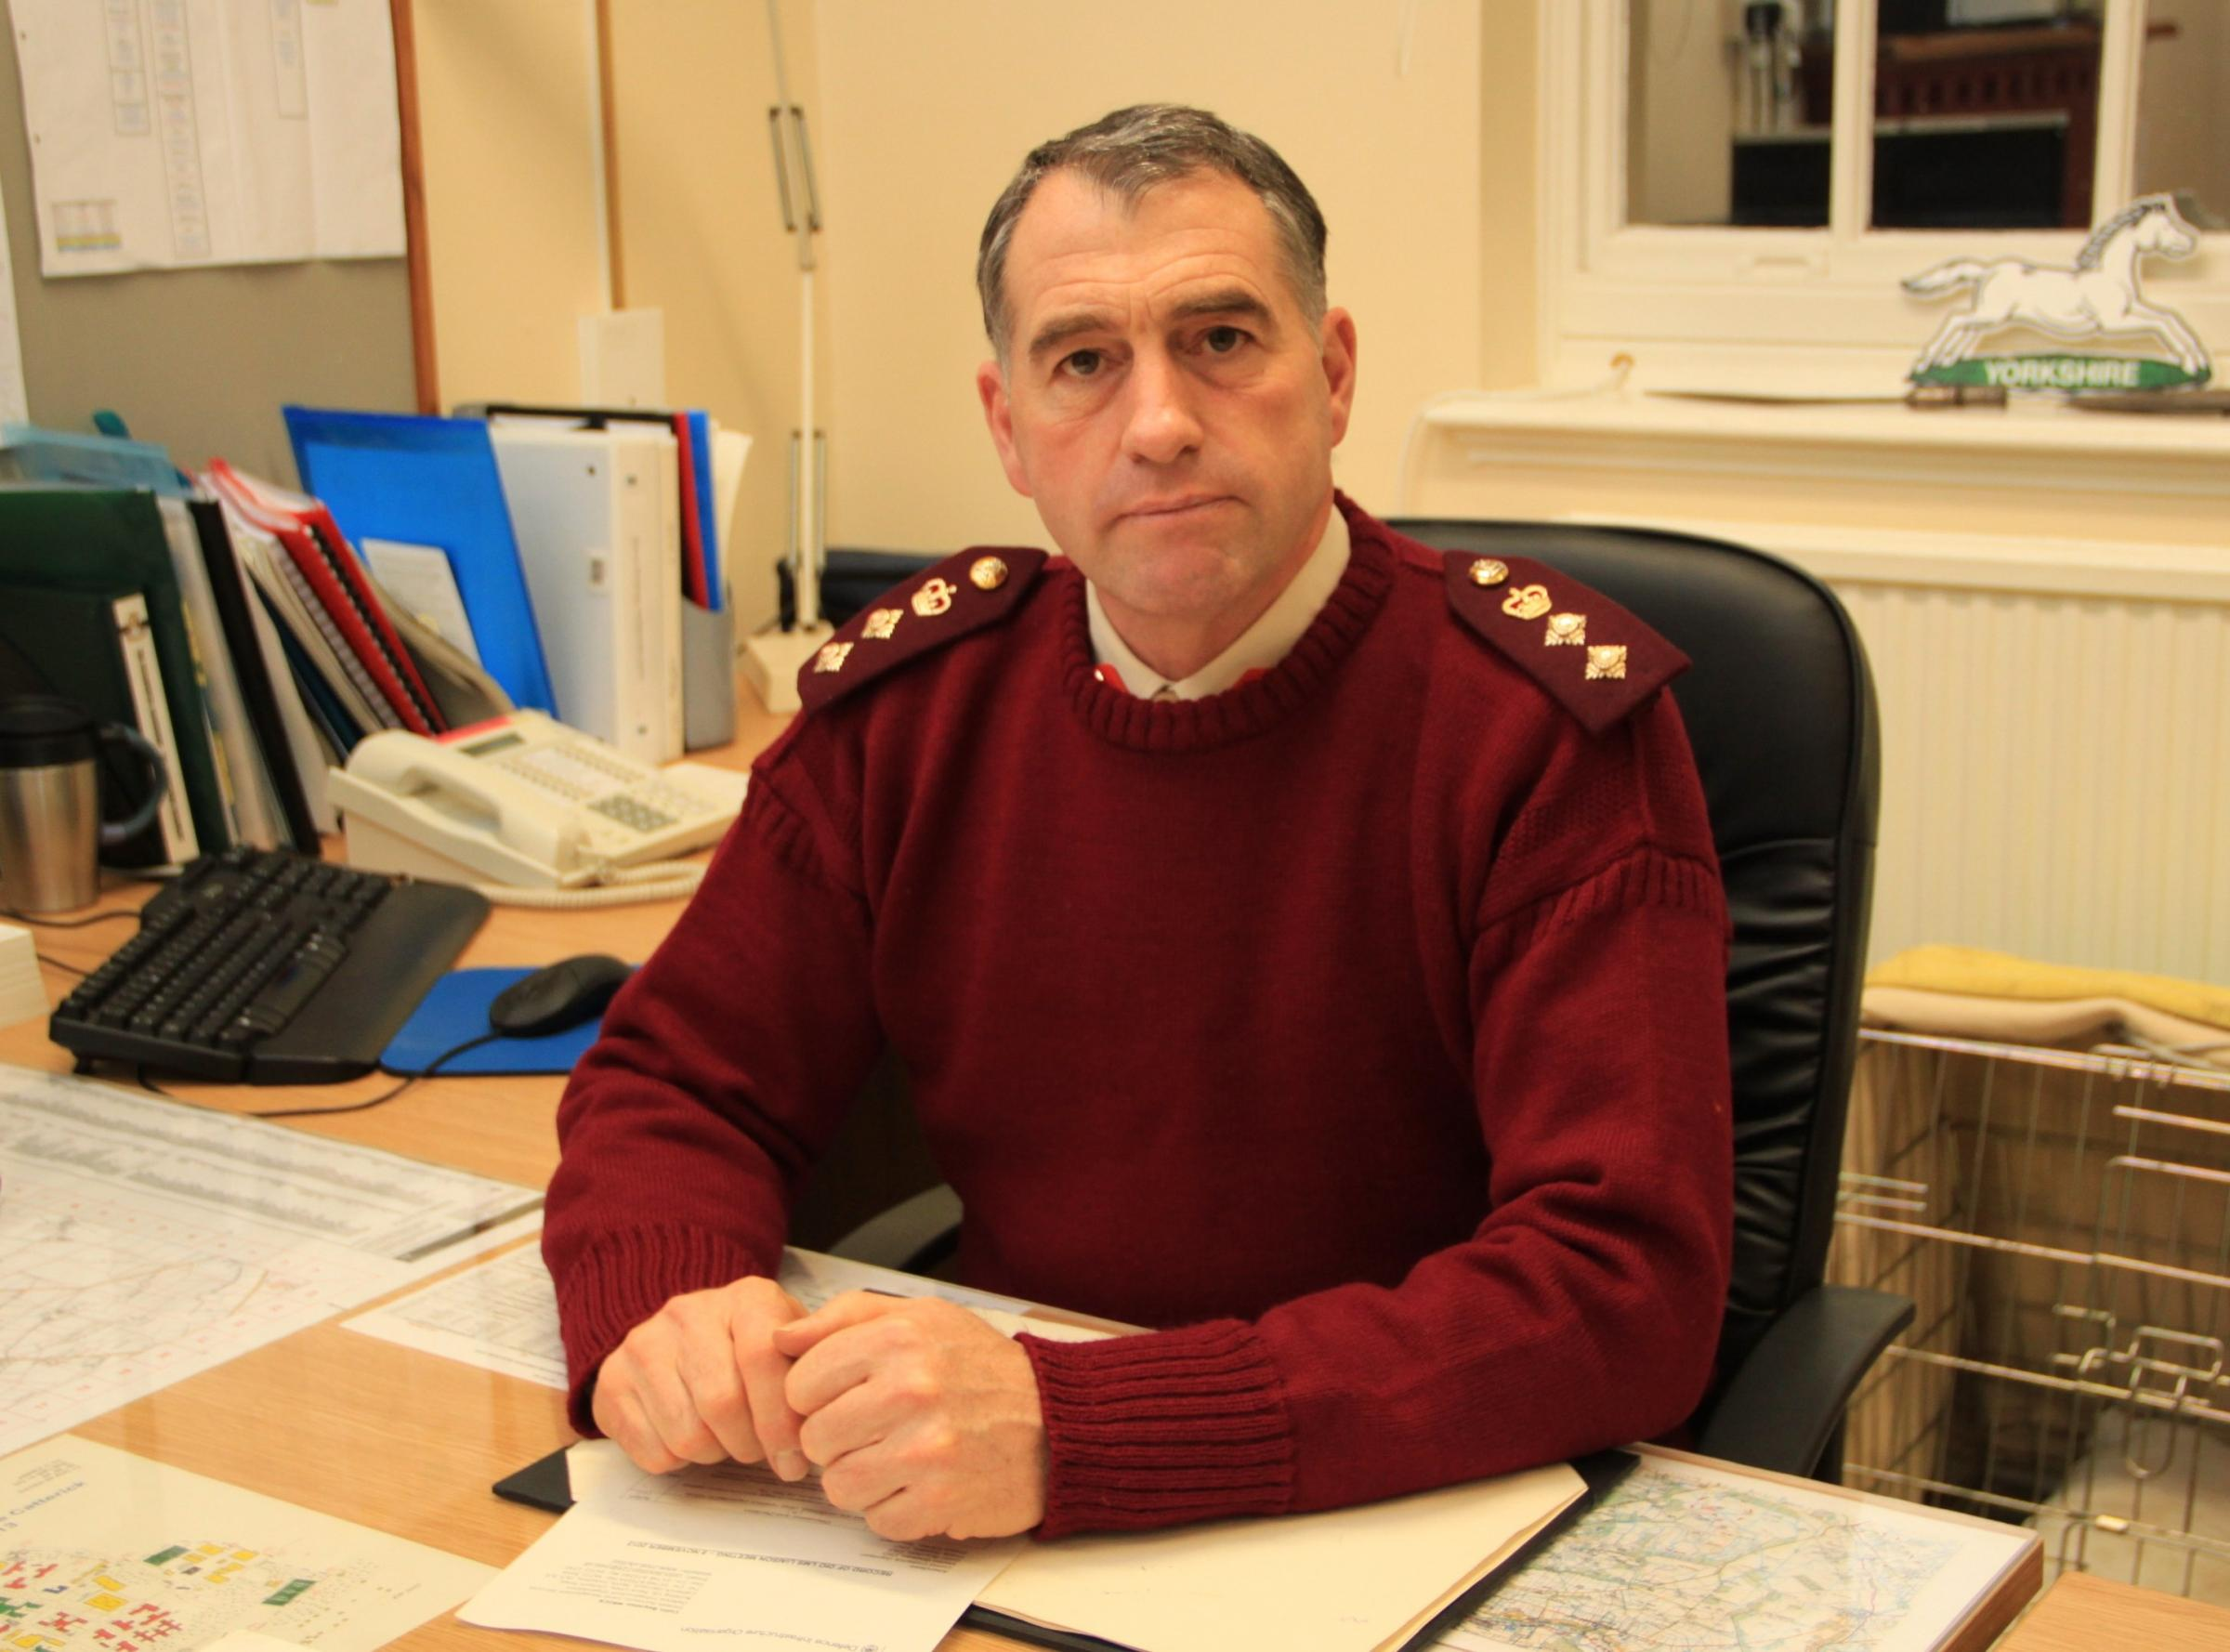 DETERMINED: Interim executive board member and commander of Catterick Garrison Colonel Stephen Padgett